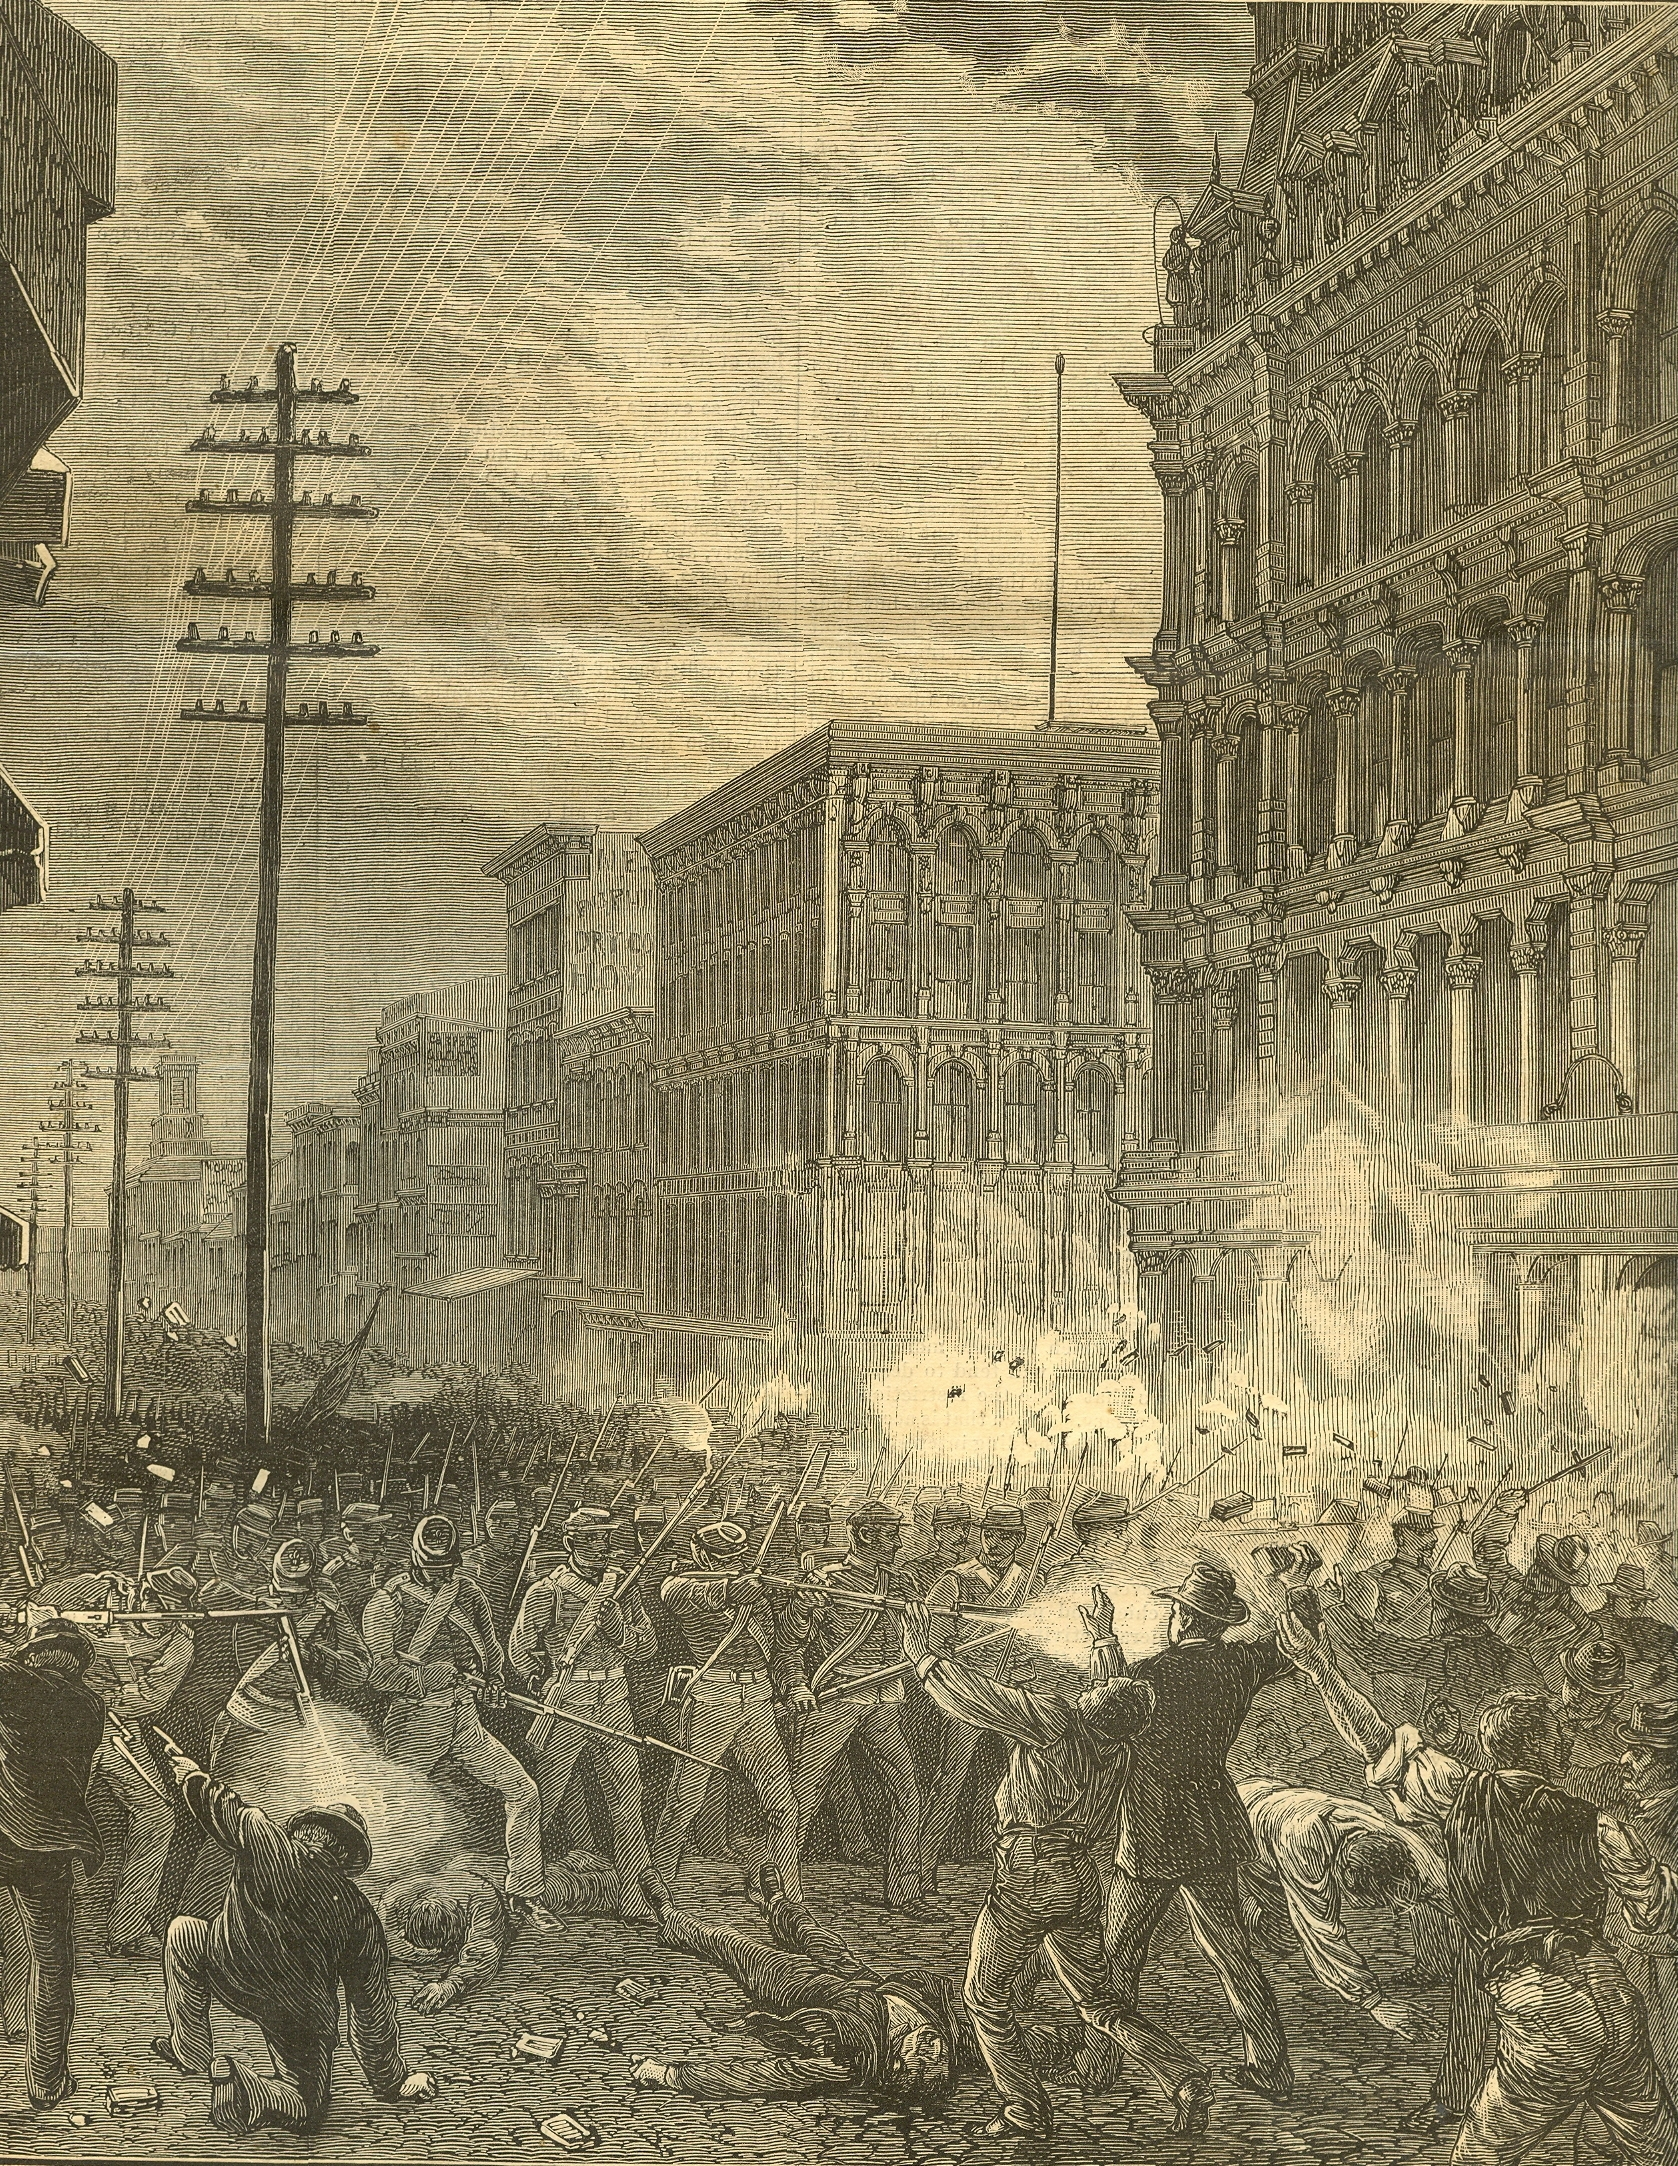 Soldiers firing on strikers during Great Railroad strike of 1877